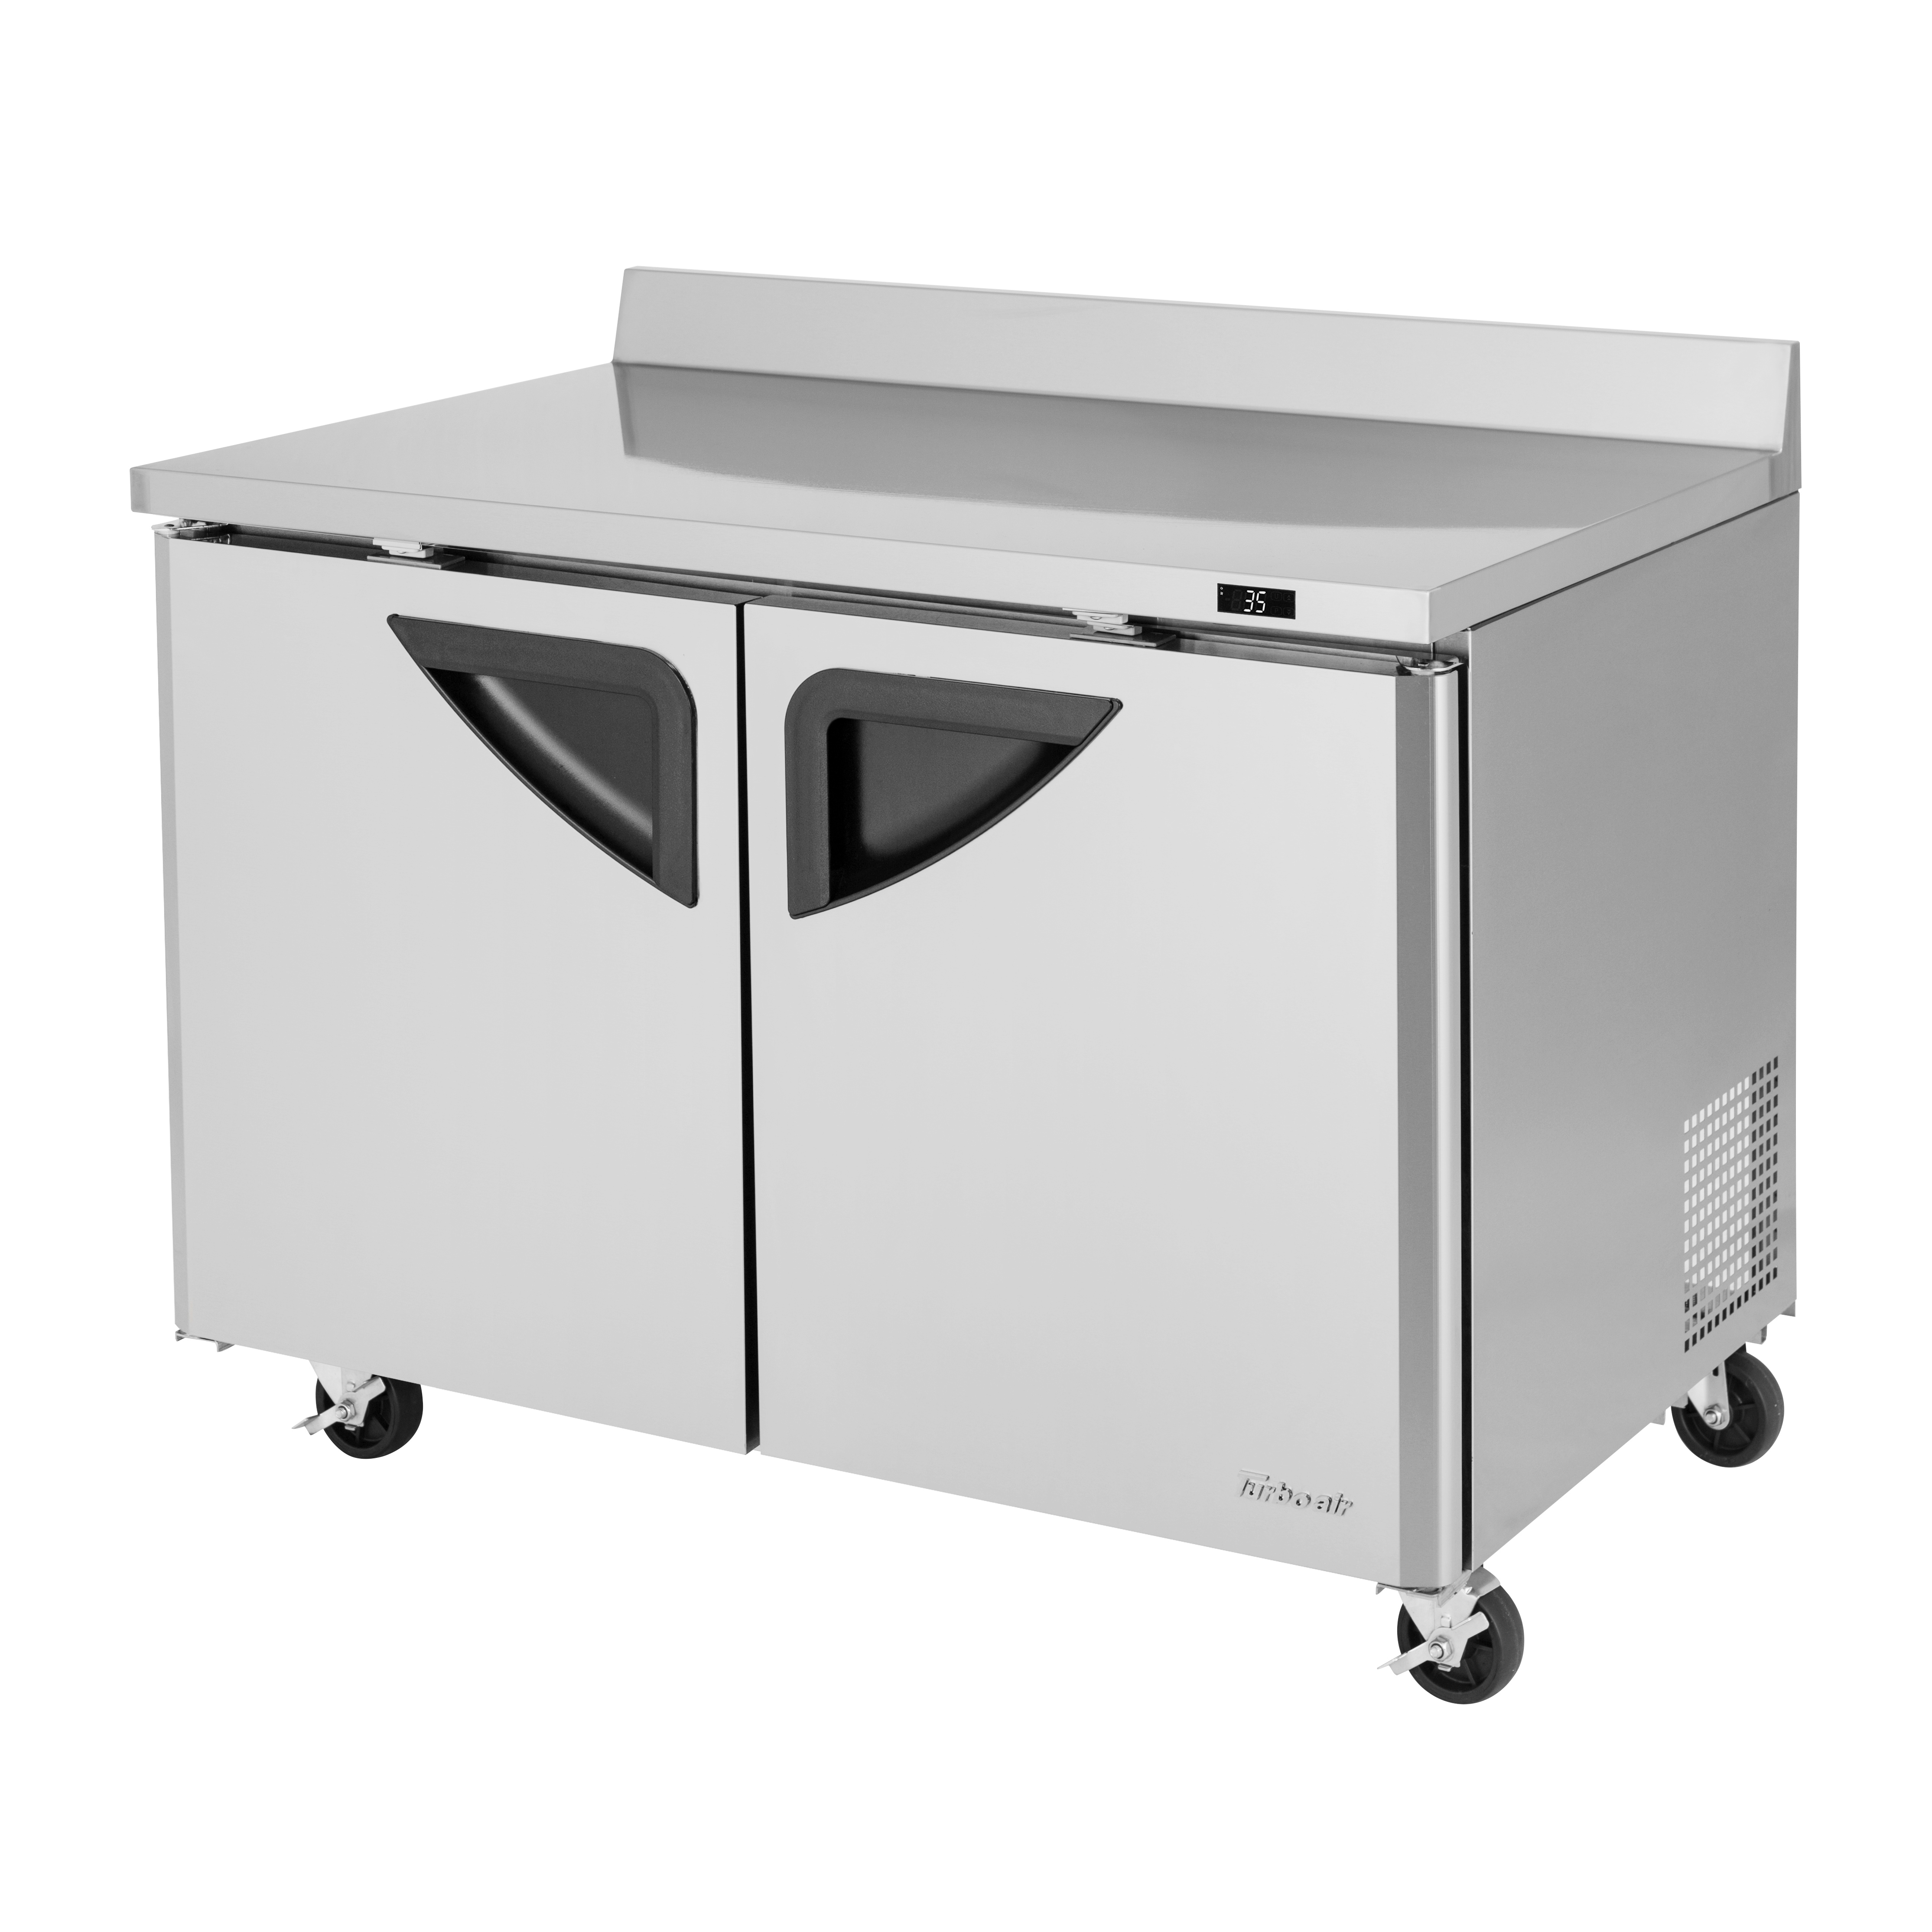 Turbo Air TWR-48SD-N refrigerated counter, work top